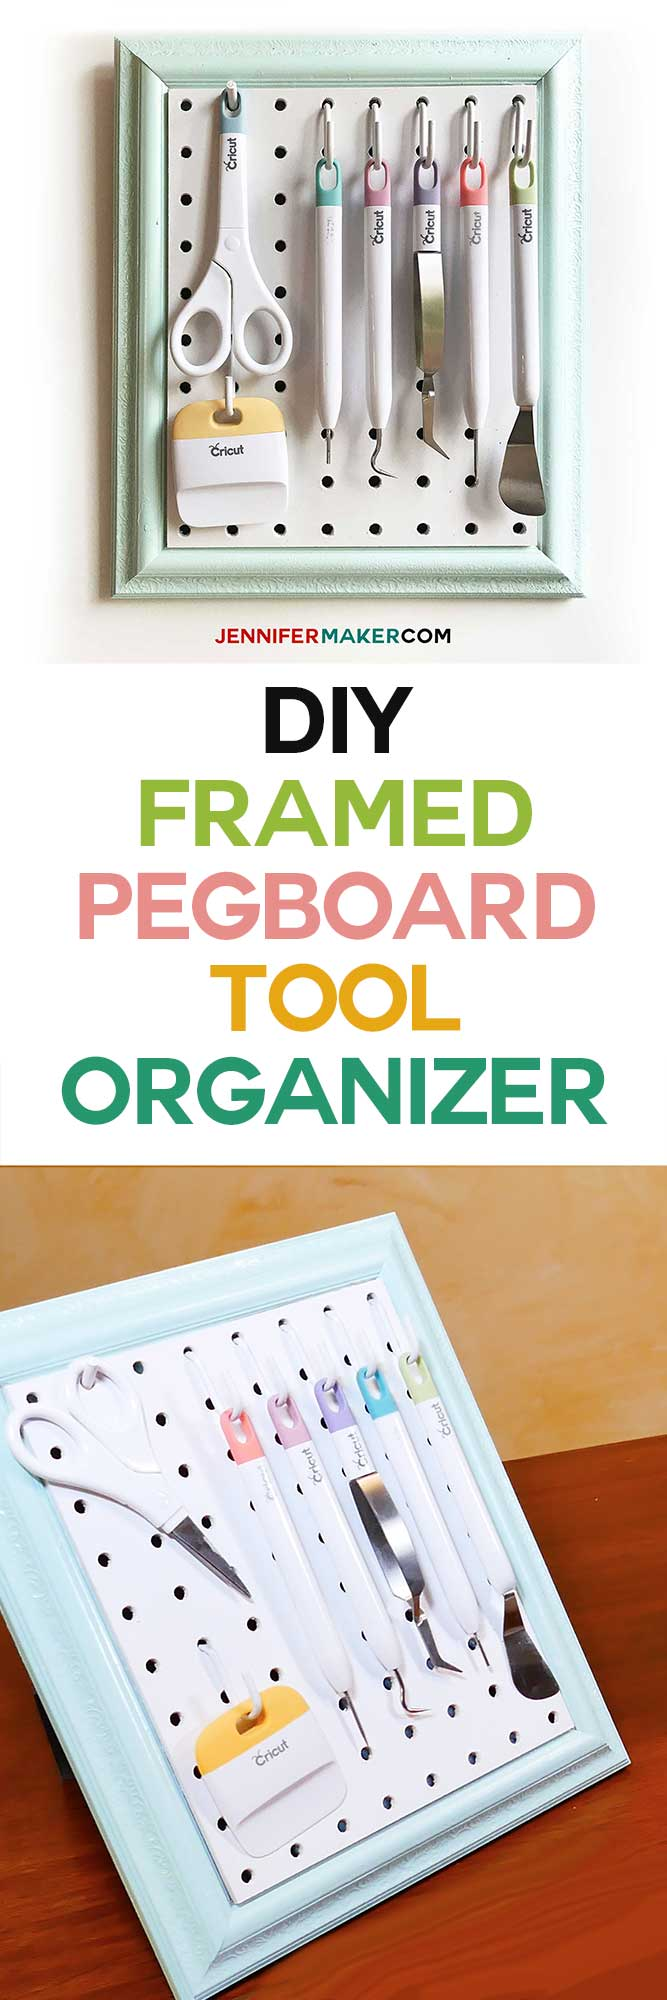 Diy framed pegboard craft organizer for tools jennifer maker framed pegboard craft organizer tutorial how to make a diy pegboard frame for your craft publicscrutiny Images